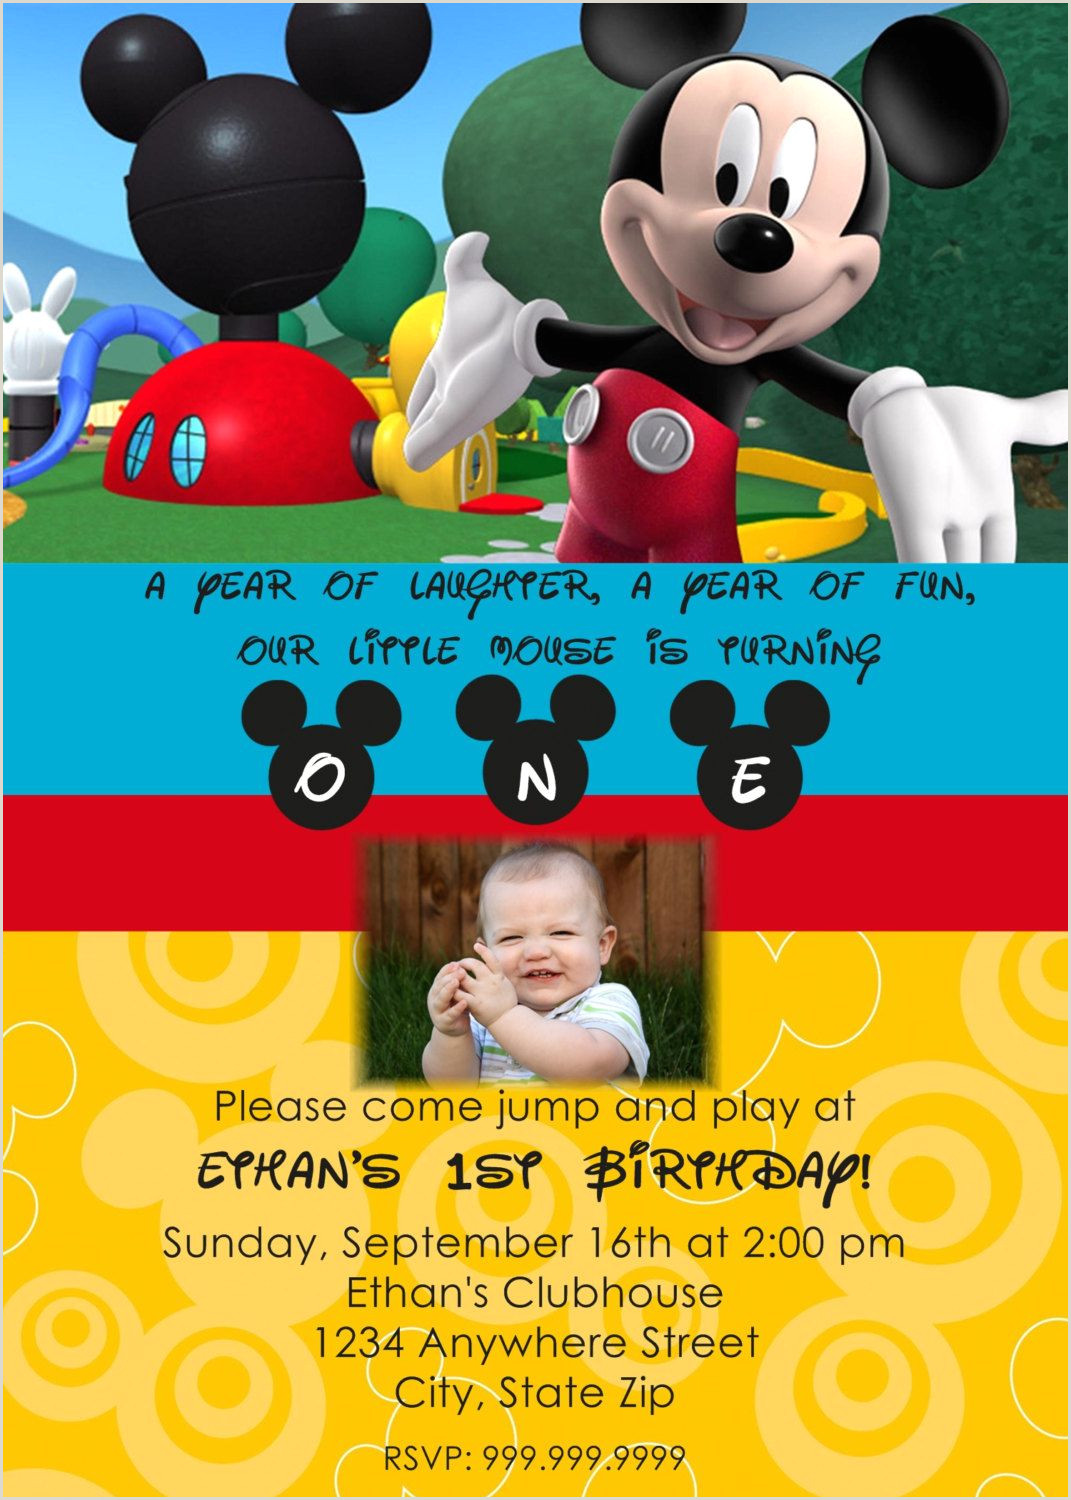 Blank Mickey Mouse Clubhouse Invitations Mickey Mouse Clubhouse Birthday Invitations Personalized